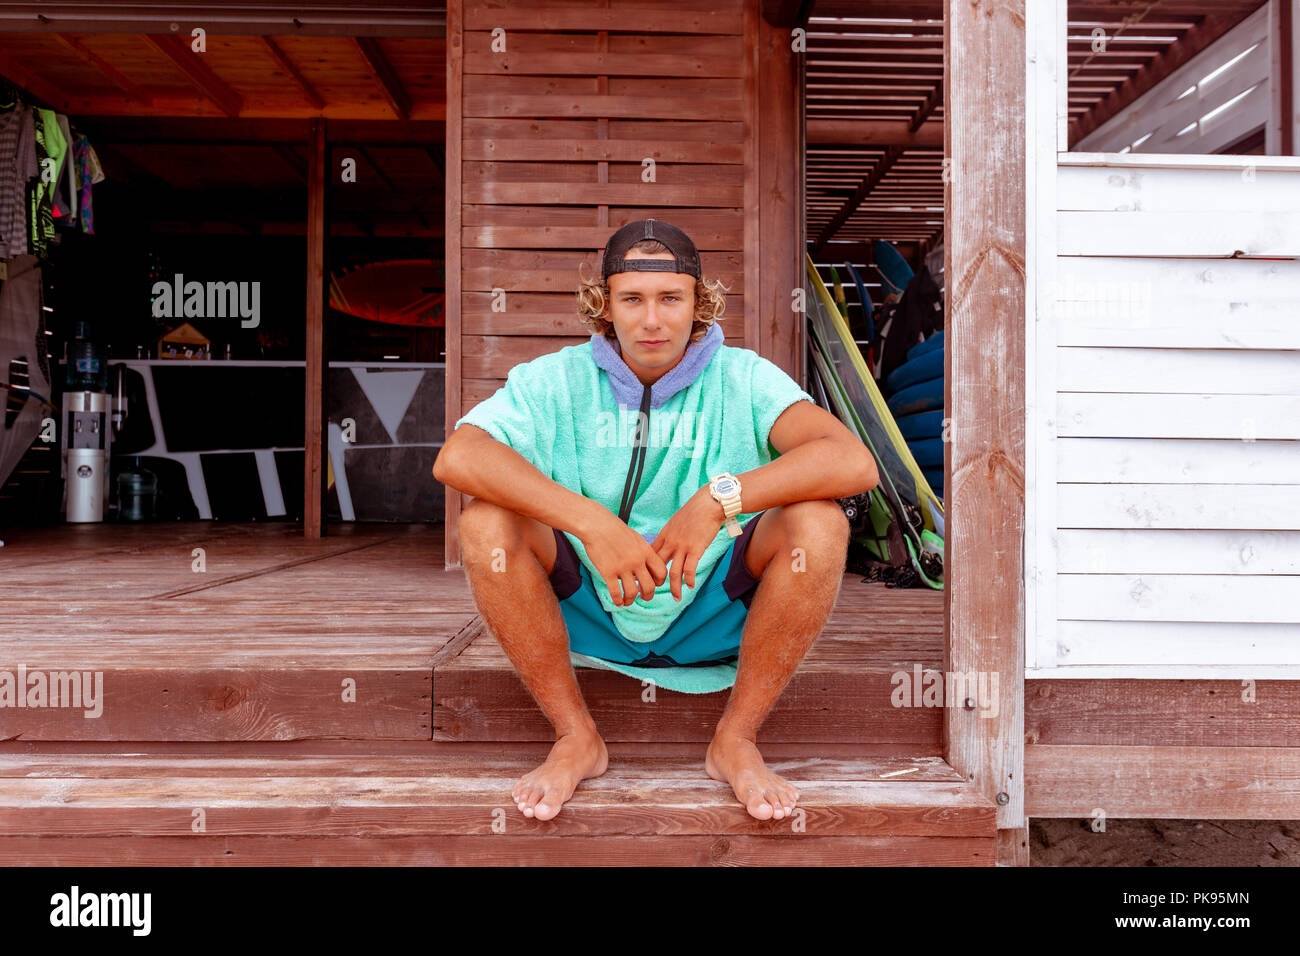 The surfer sits on the terrace on the beach looking out into the camera. - Stock Image